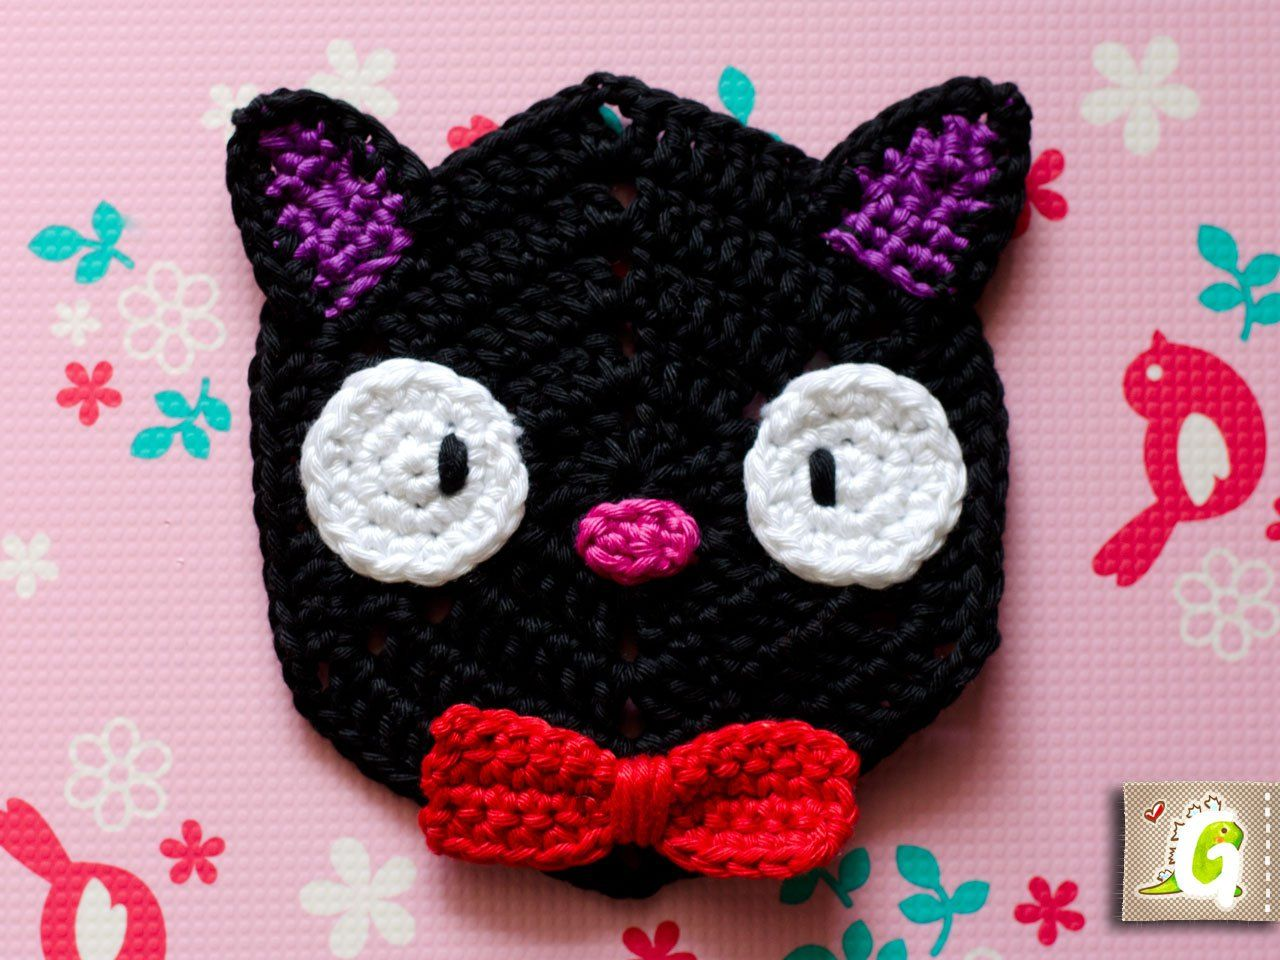 Groaaar jiji hexagon crochet pinterest crochet gifts this is the third hexagon out of my studio ghibli themed hexagon series you can make a studio ghibli blanket or throw table runner scarf or wall hanging bankloansurffo Images